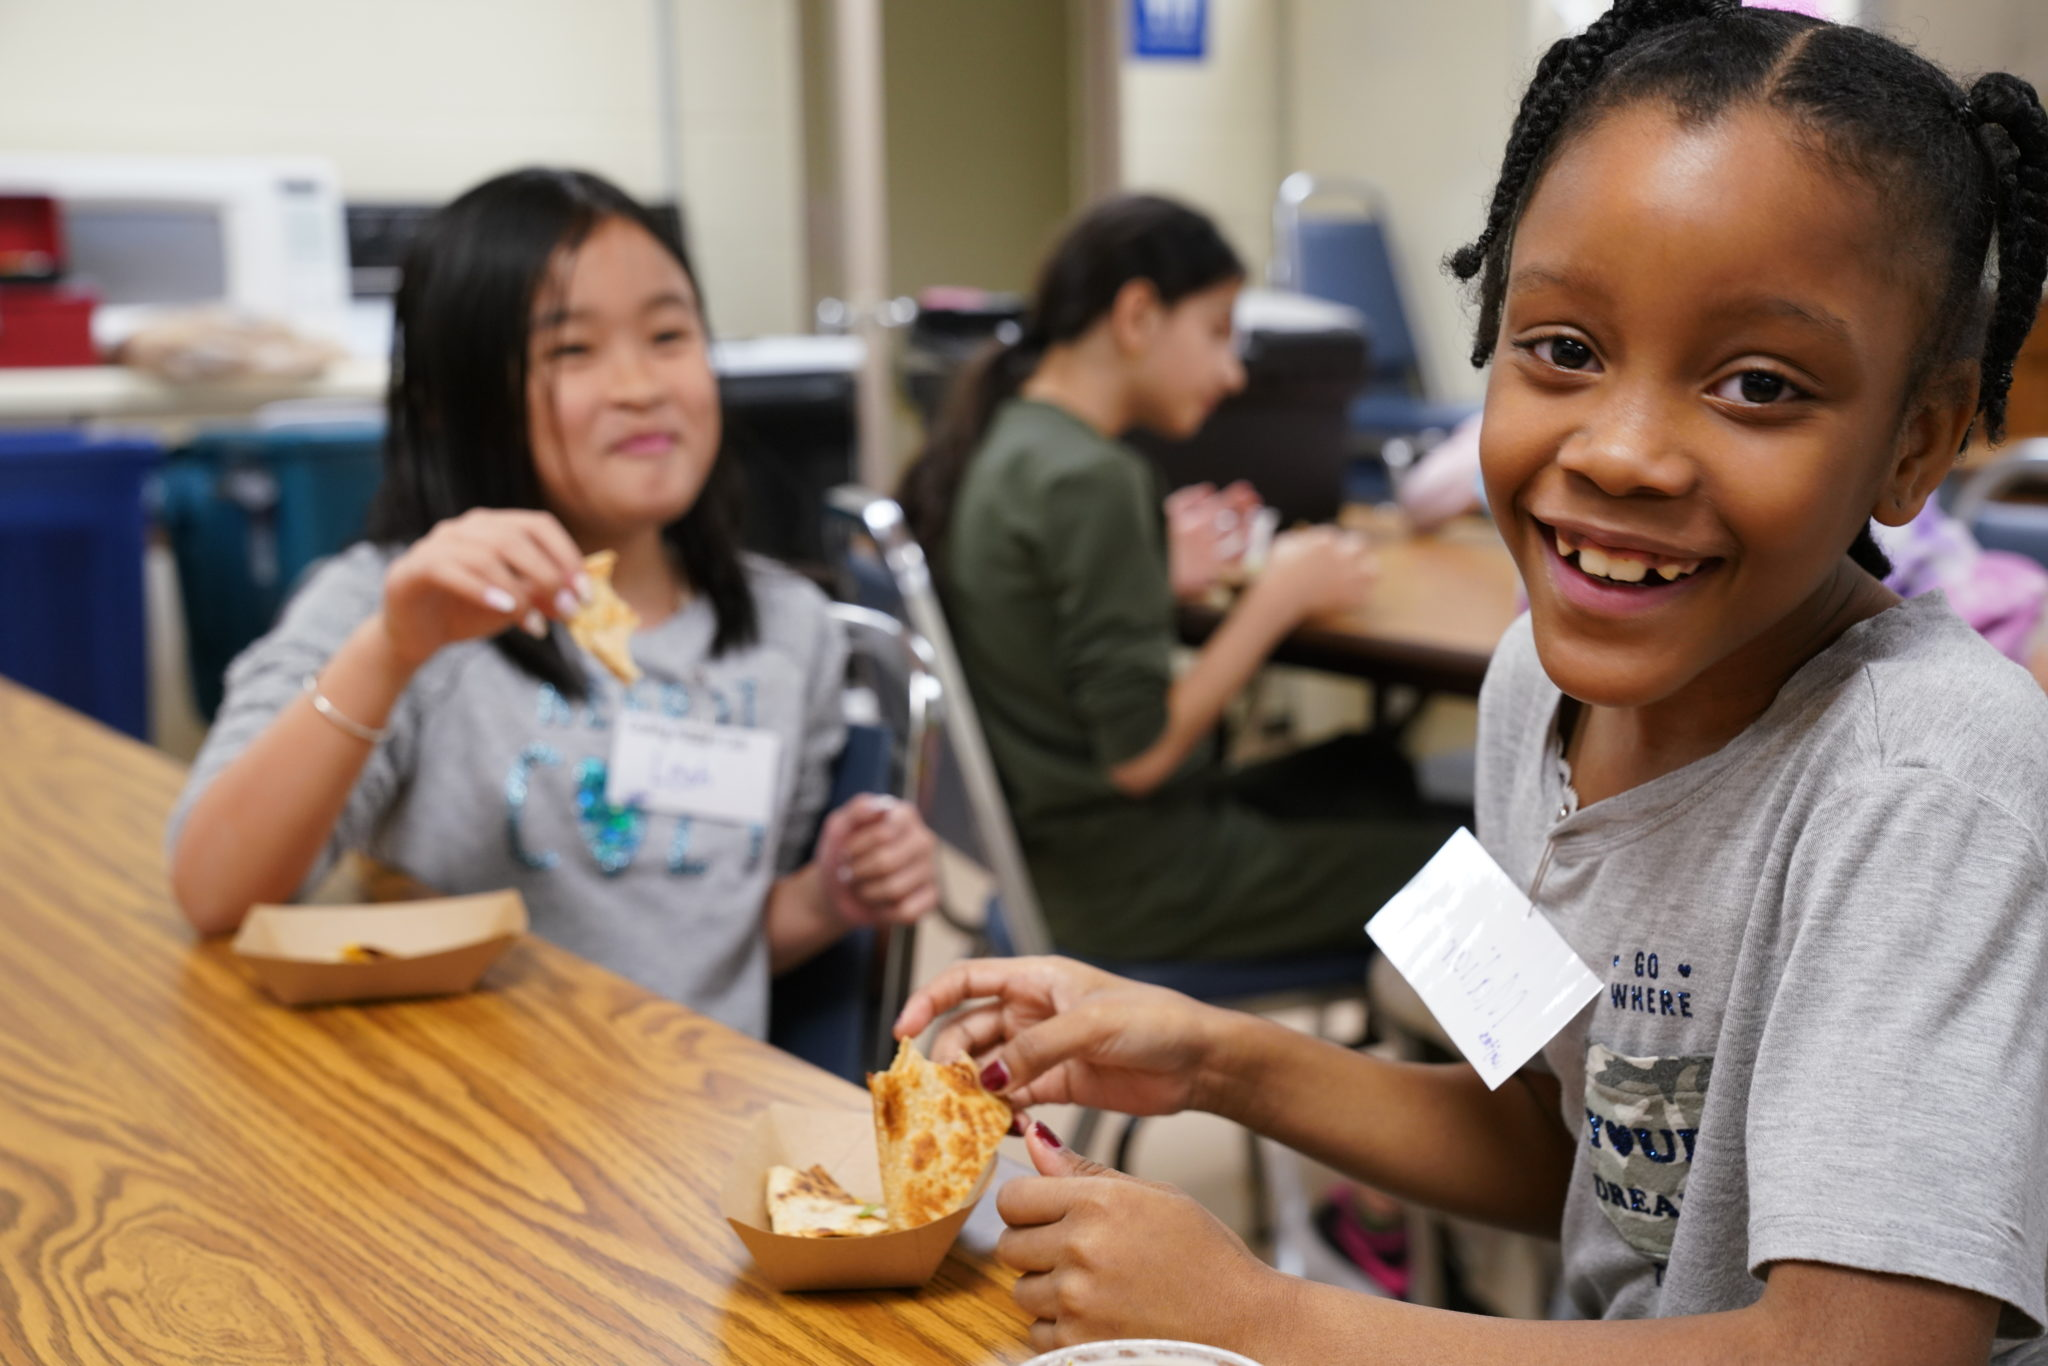 Students participate in Cooking Matters classes taught by Gleaners instructors.